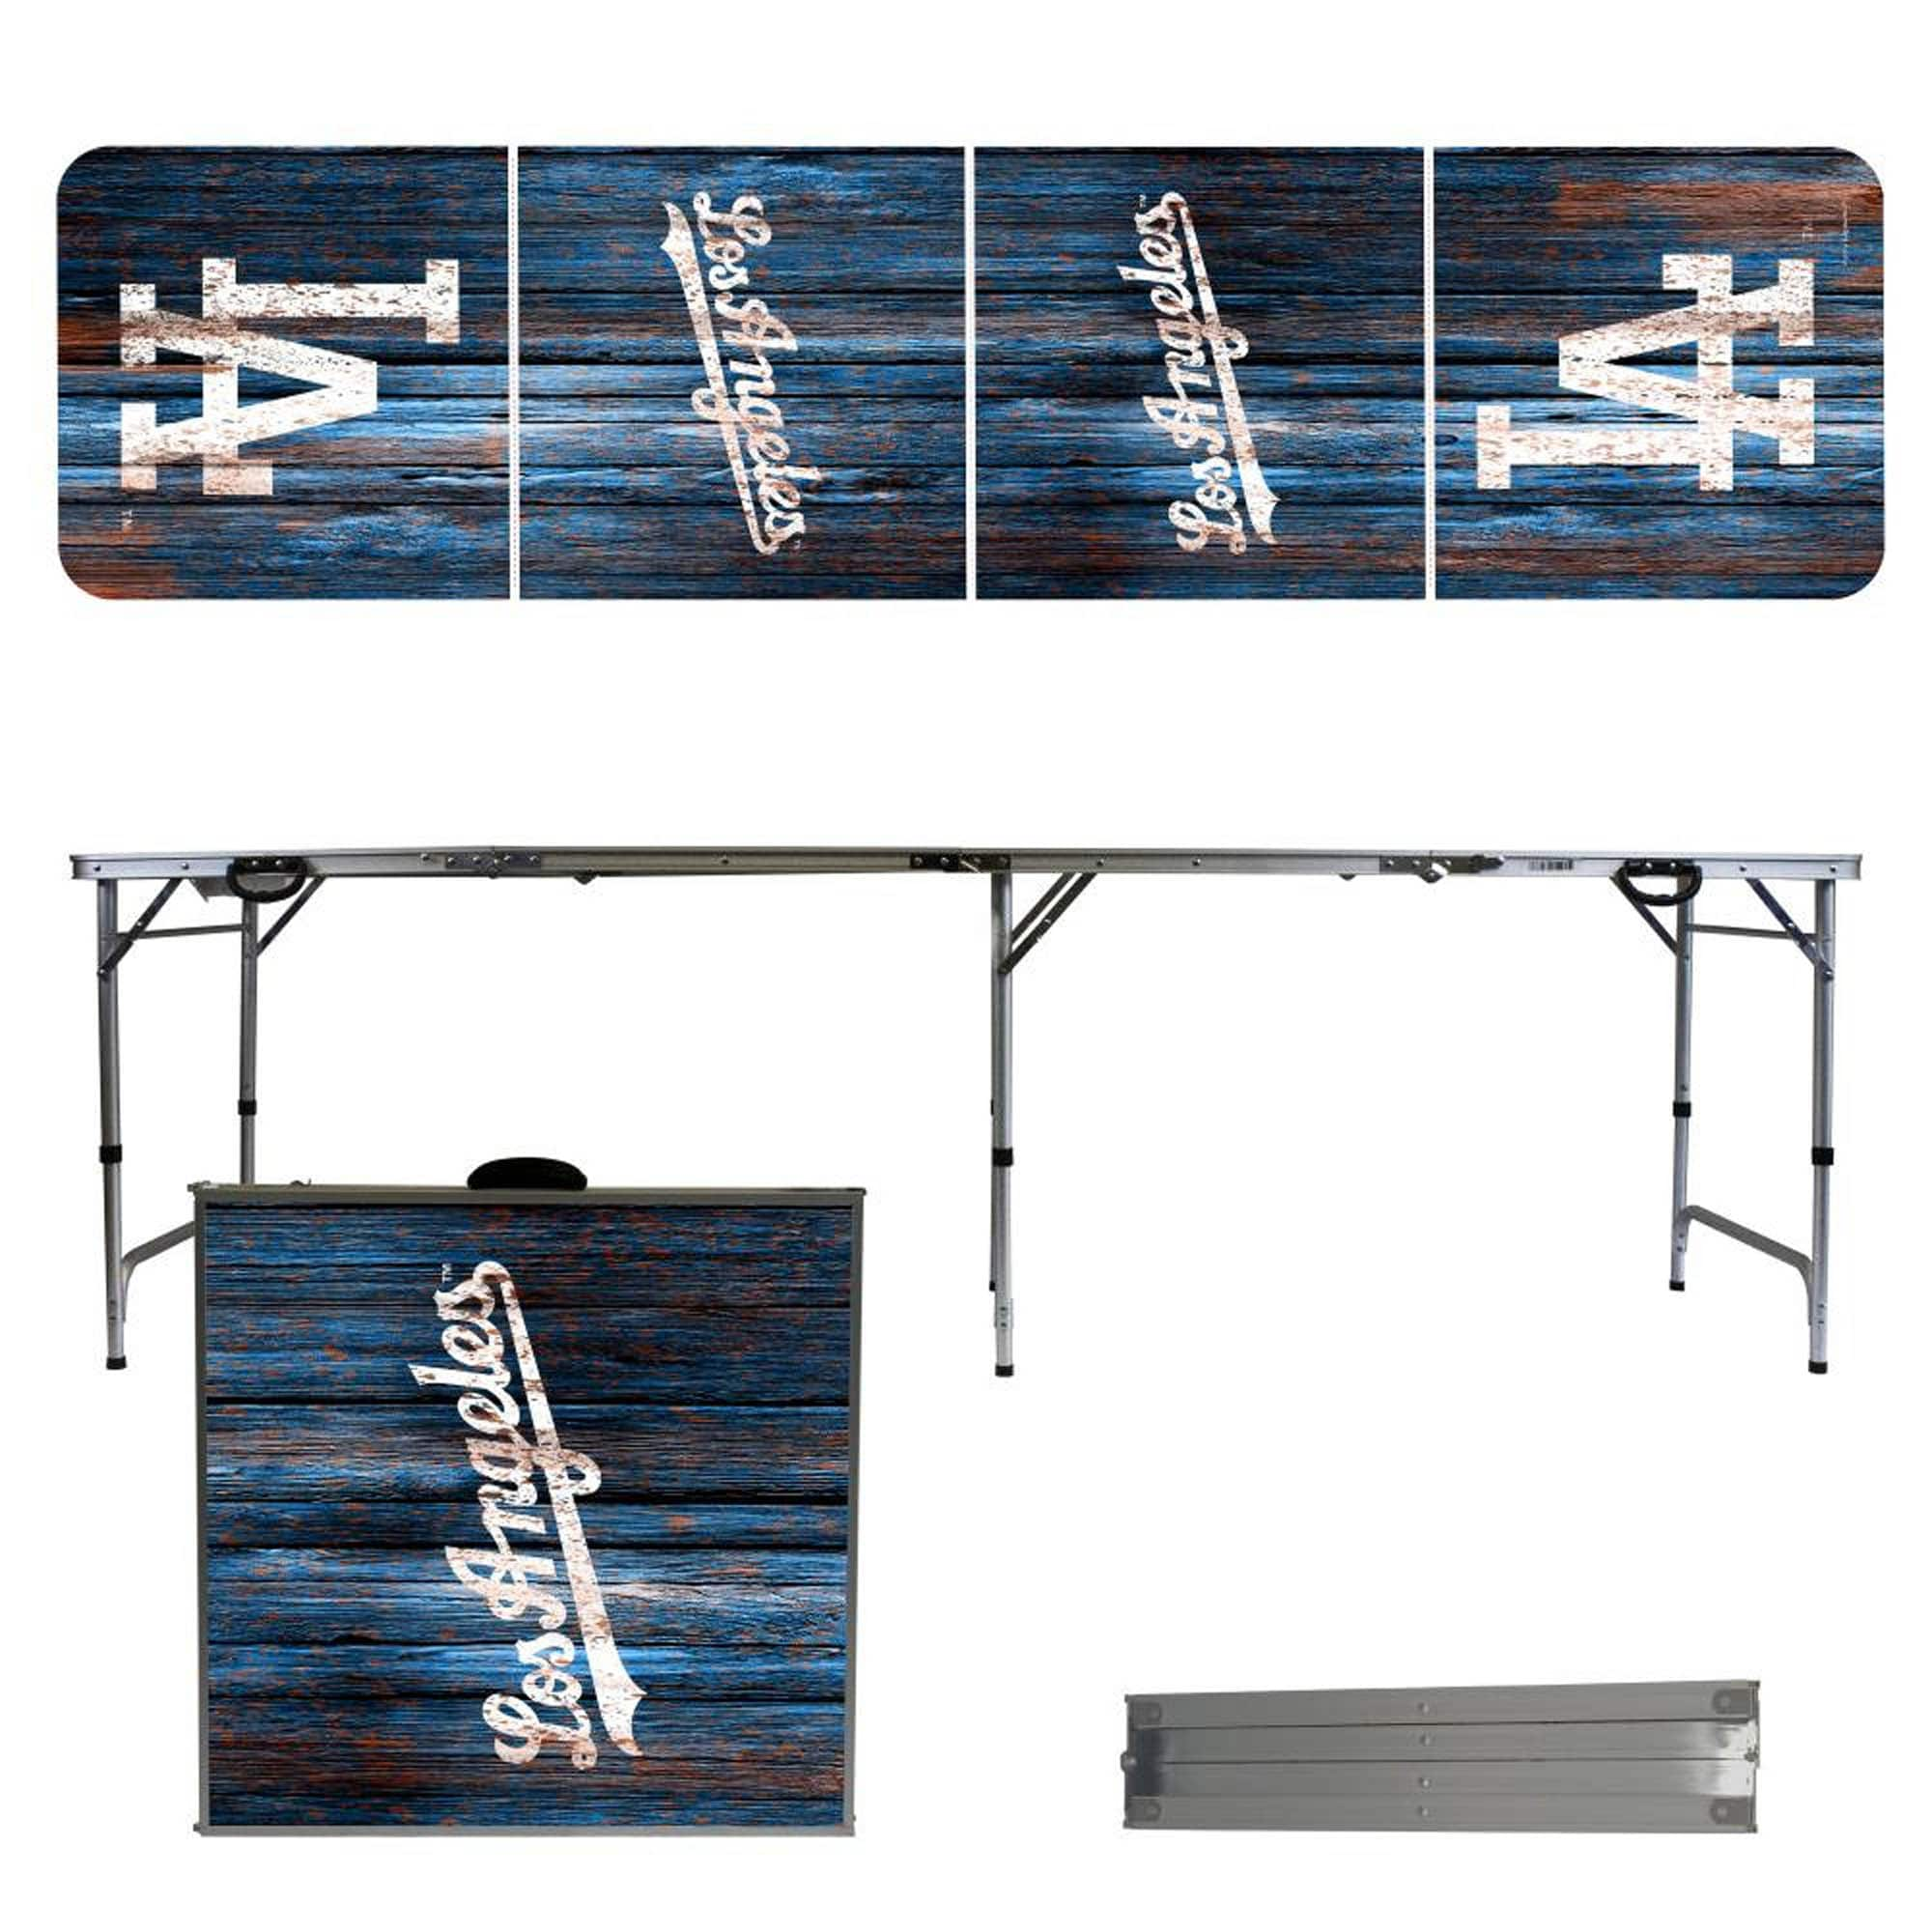 Los Angeles Dodgers Weathered Design 8' Portable Folding Tailgate Table